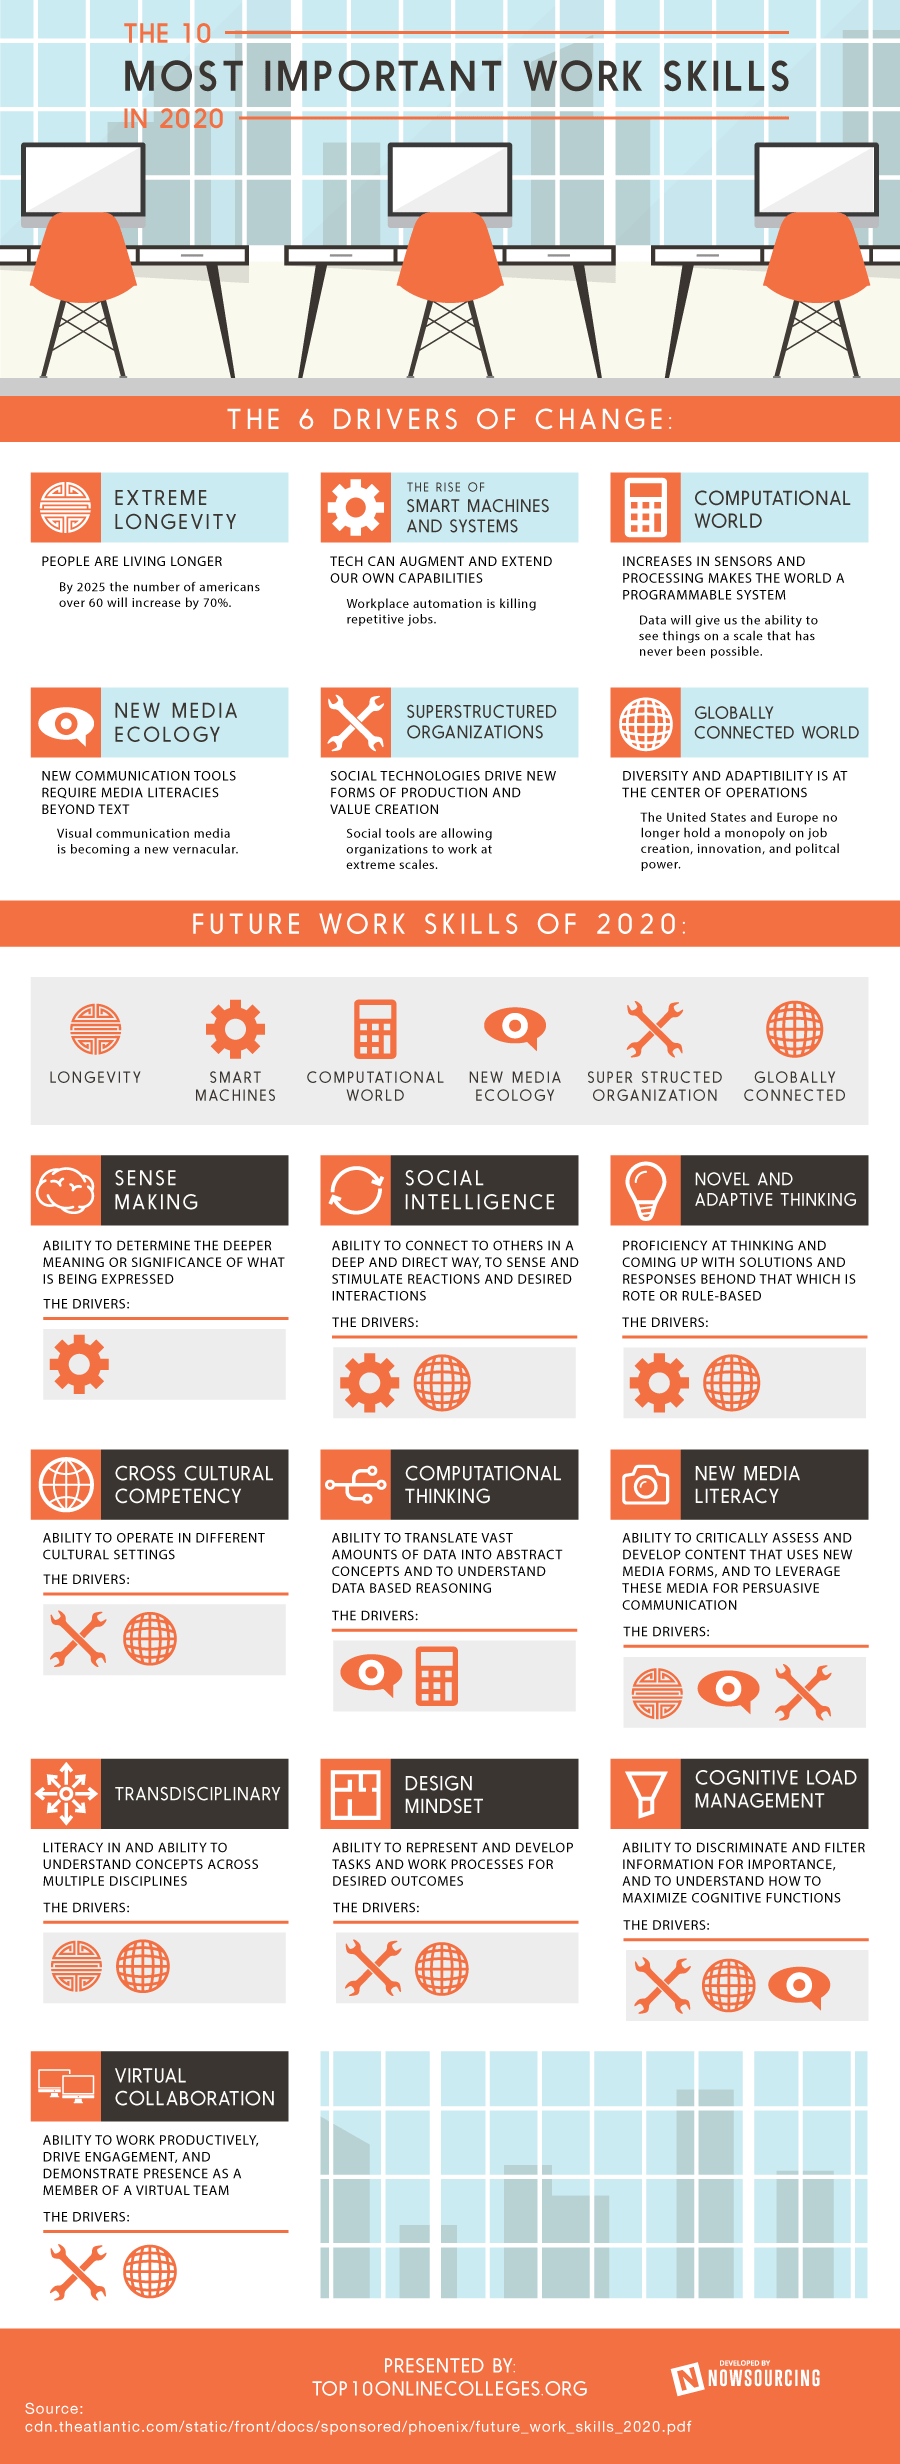 Top Skills for Job Seekers to Master by 2020 - FlexJobs